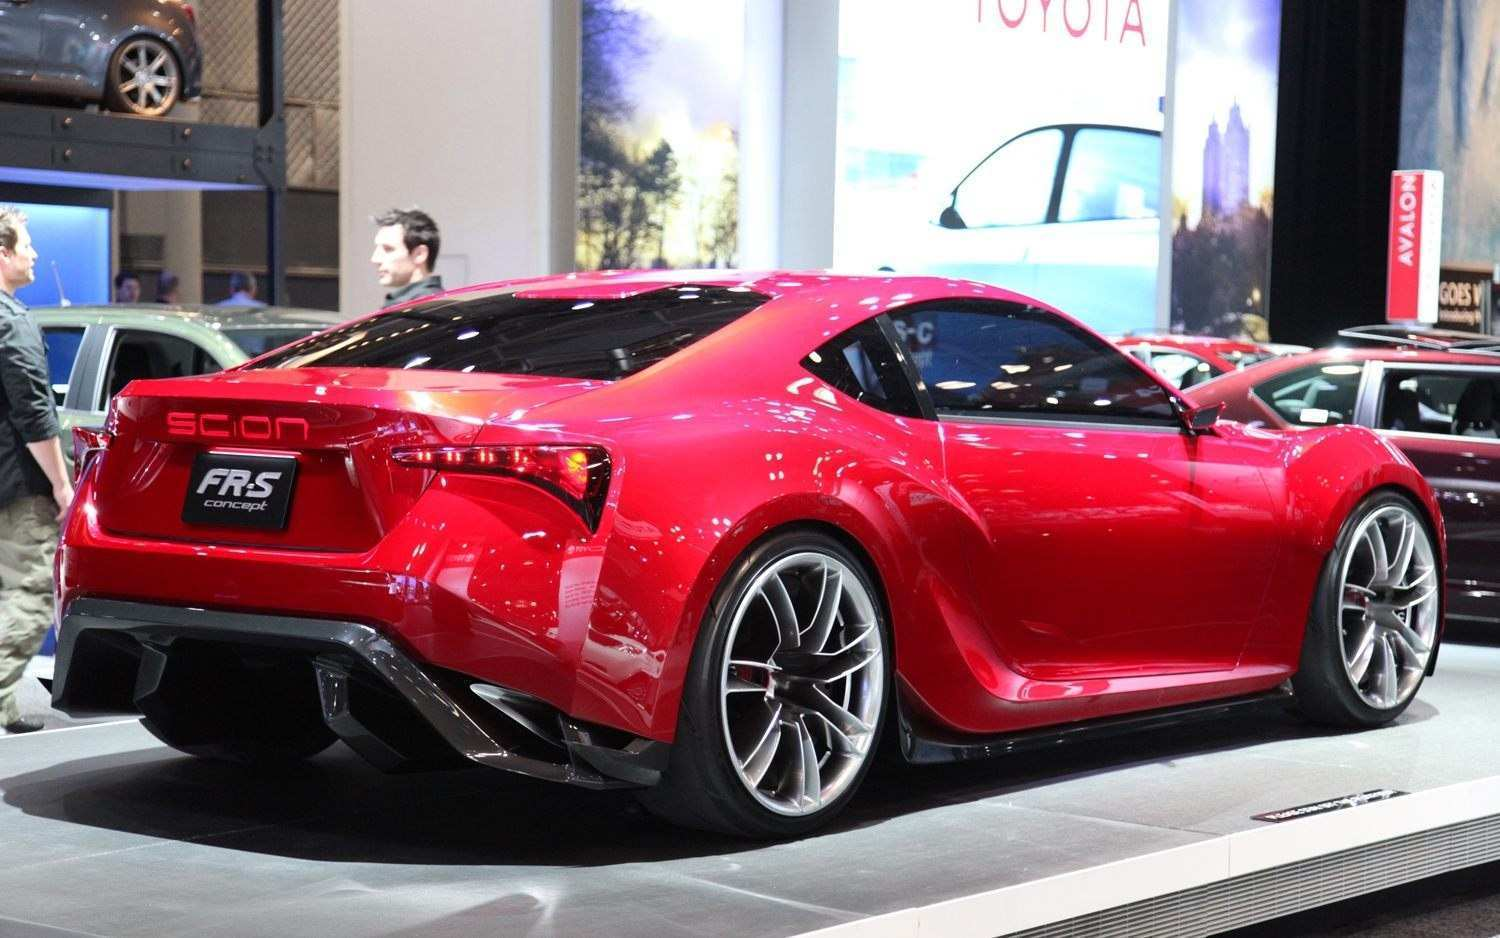 98 The Best 2020 Scion Fr S Photos